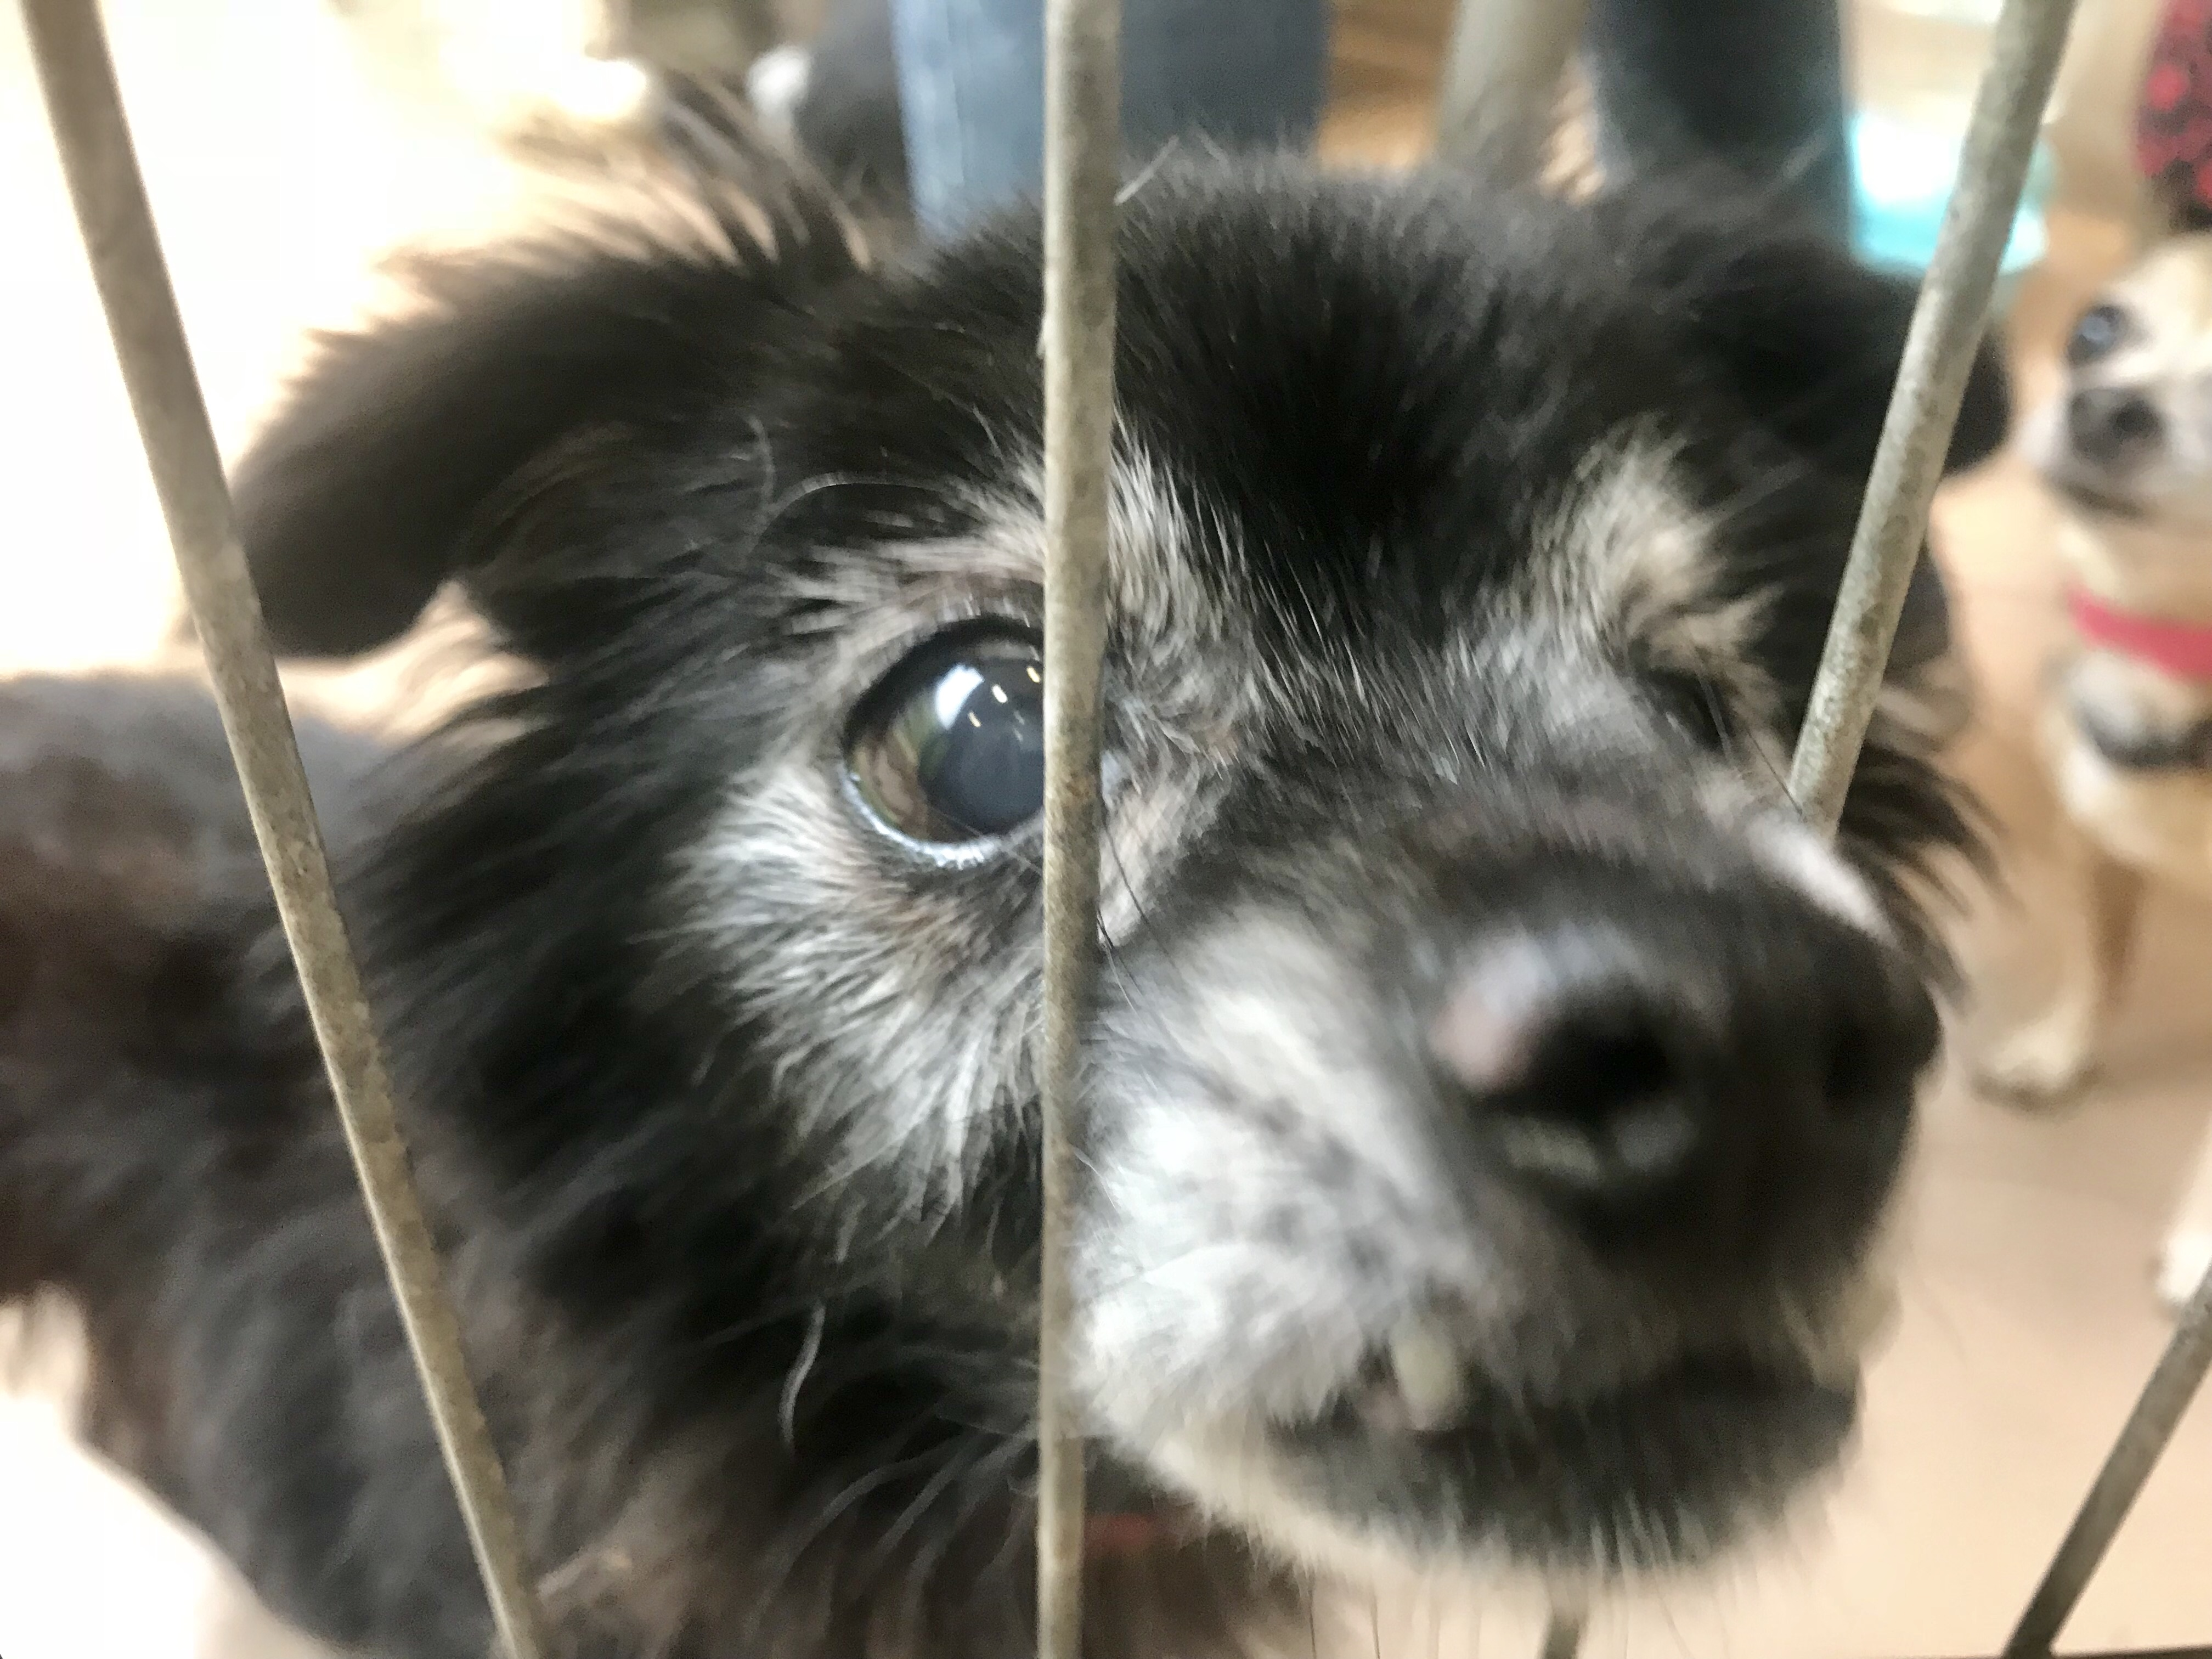 urgent wan update all 6 los angeles city animal shelters are